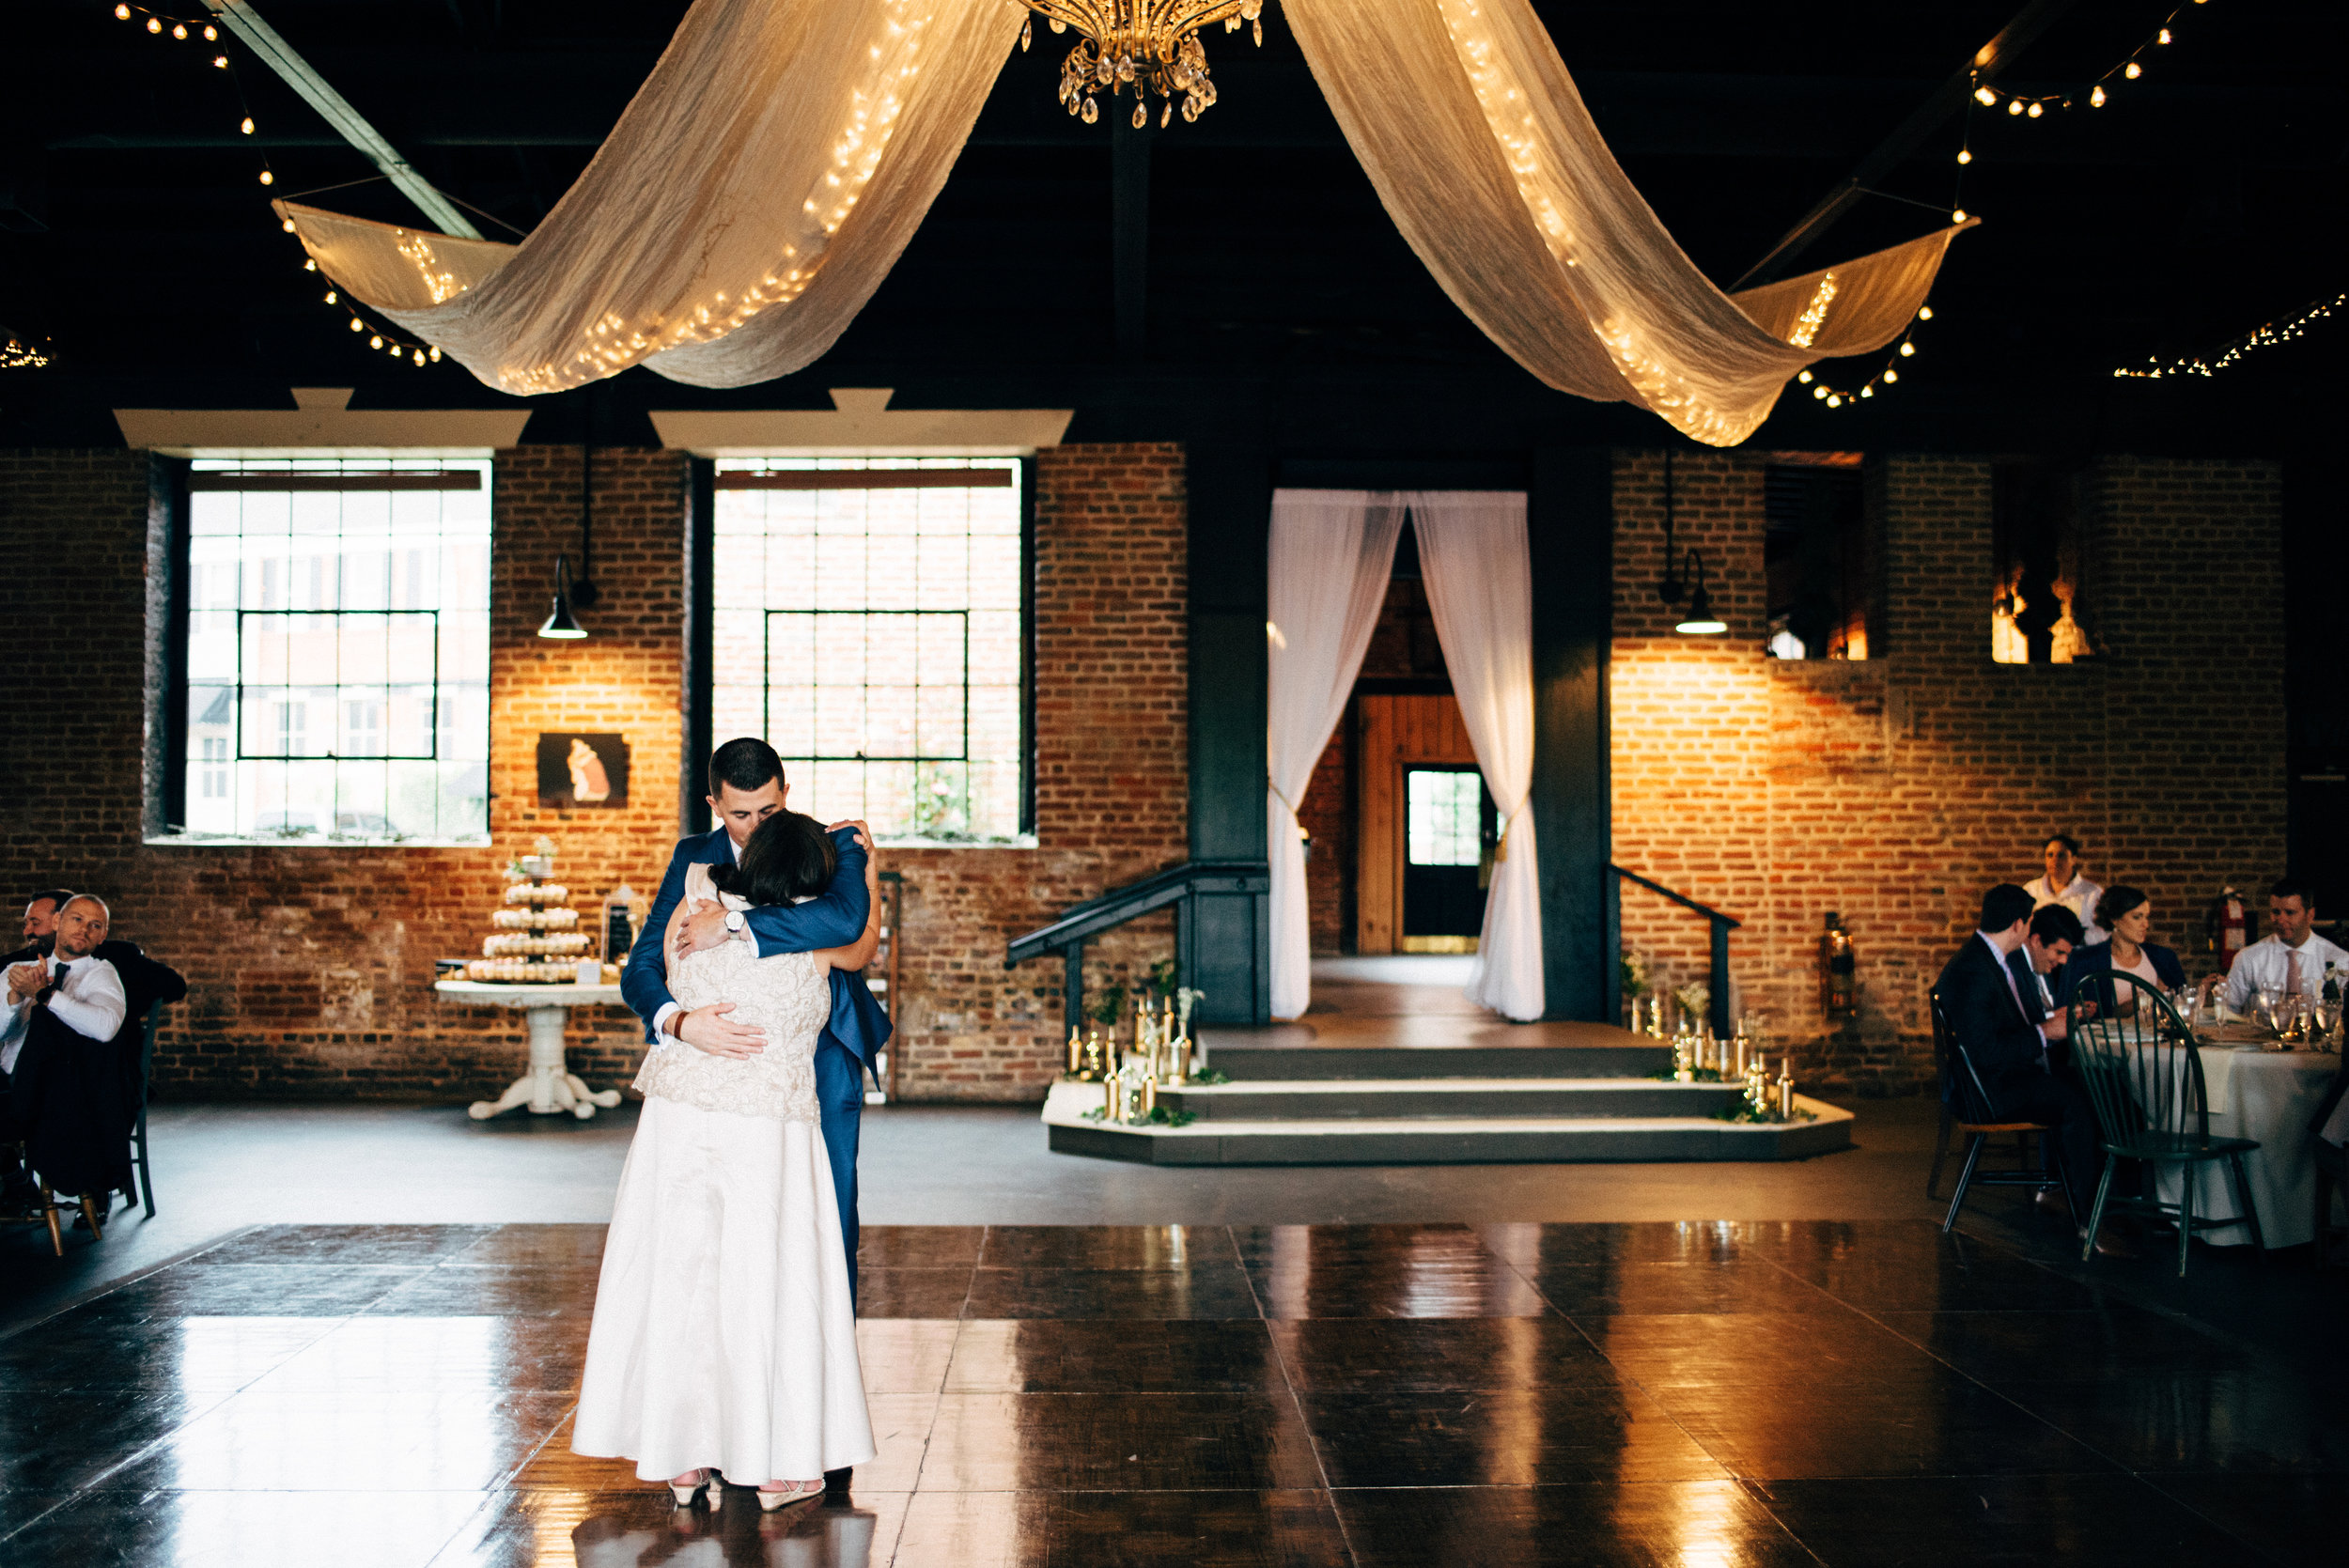 groom and his mother hug after dance during wedding reception at the Inn at the Old Silk Mill